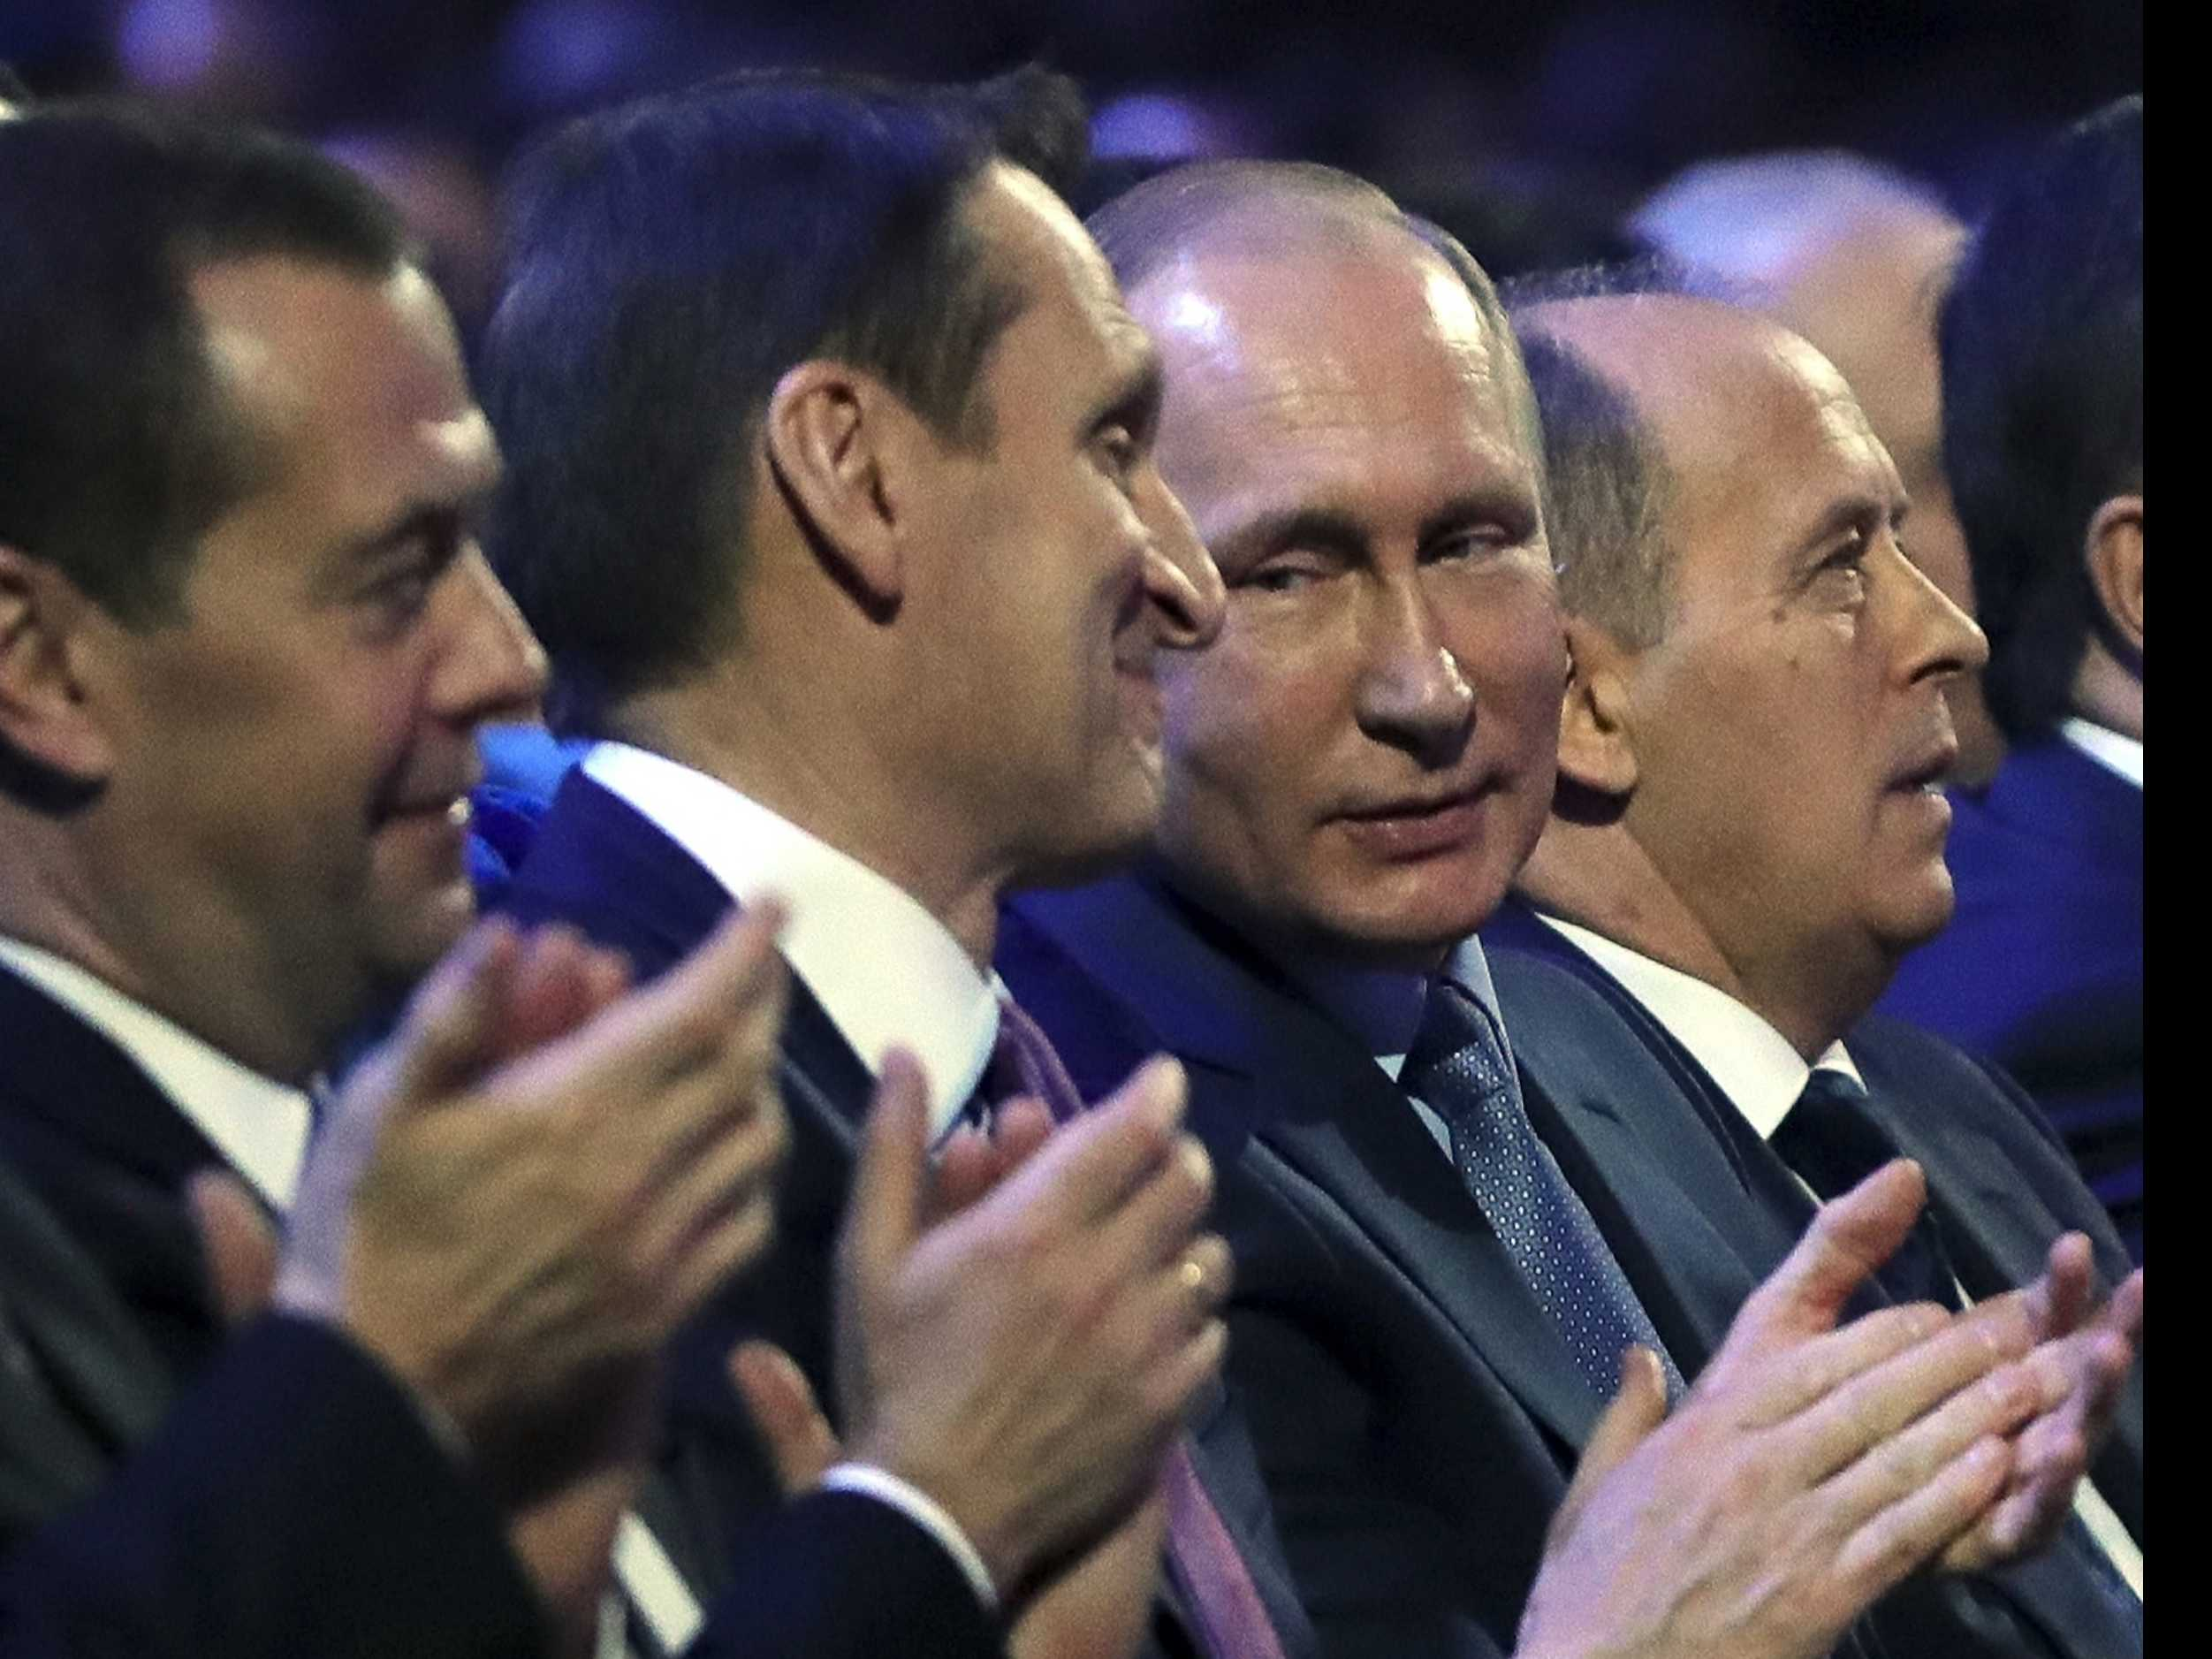 Putin is Heir to Russia's Long Disinformation Experience